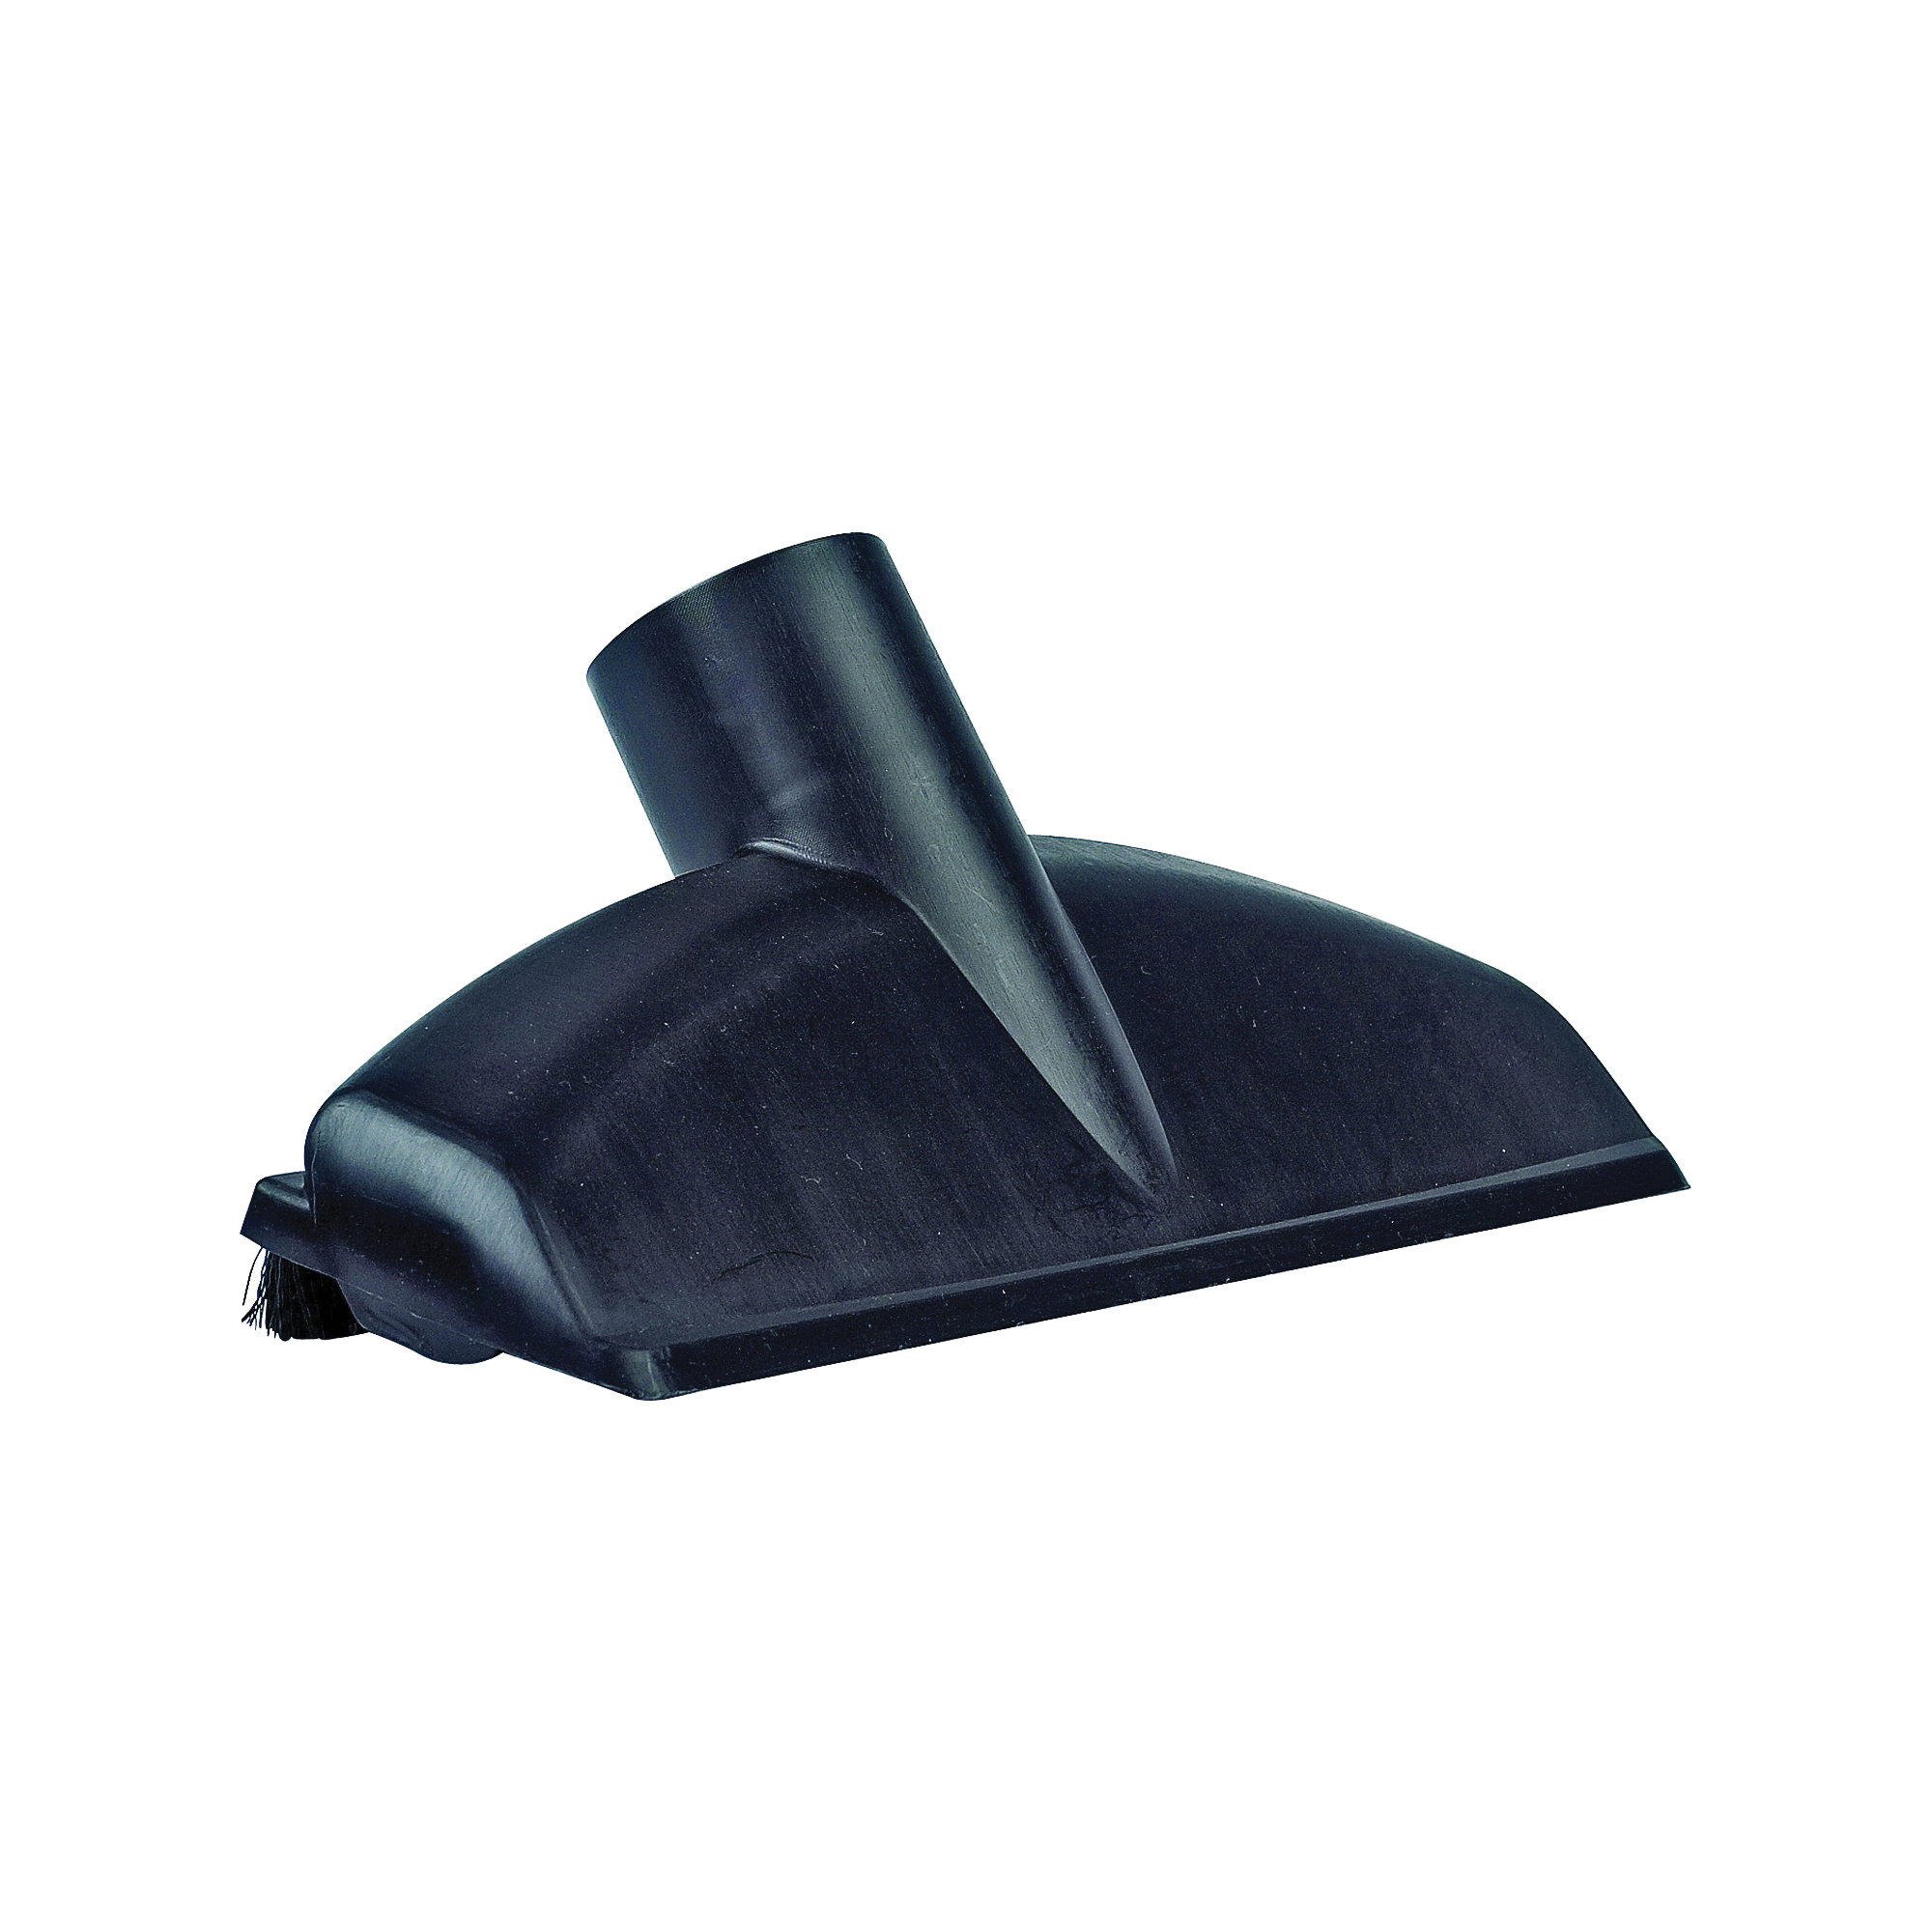 Picture of Shop-Vac 9067700 Floor Nozzle, Wet/Dry, For: 2-1/2 in Dia Extension Wands